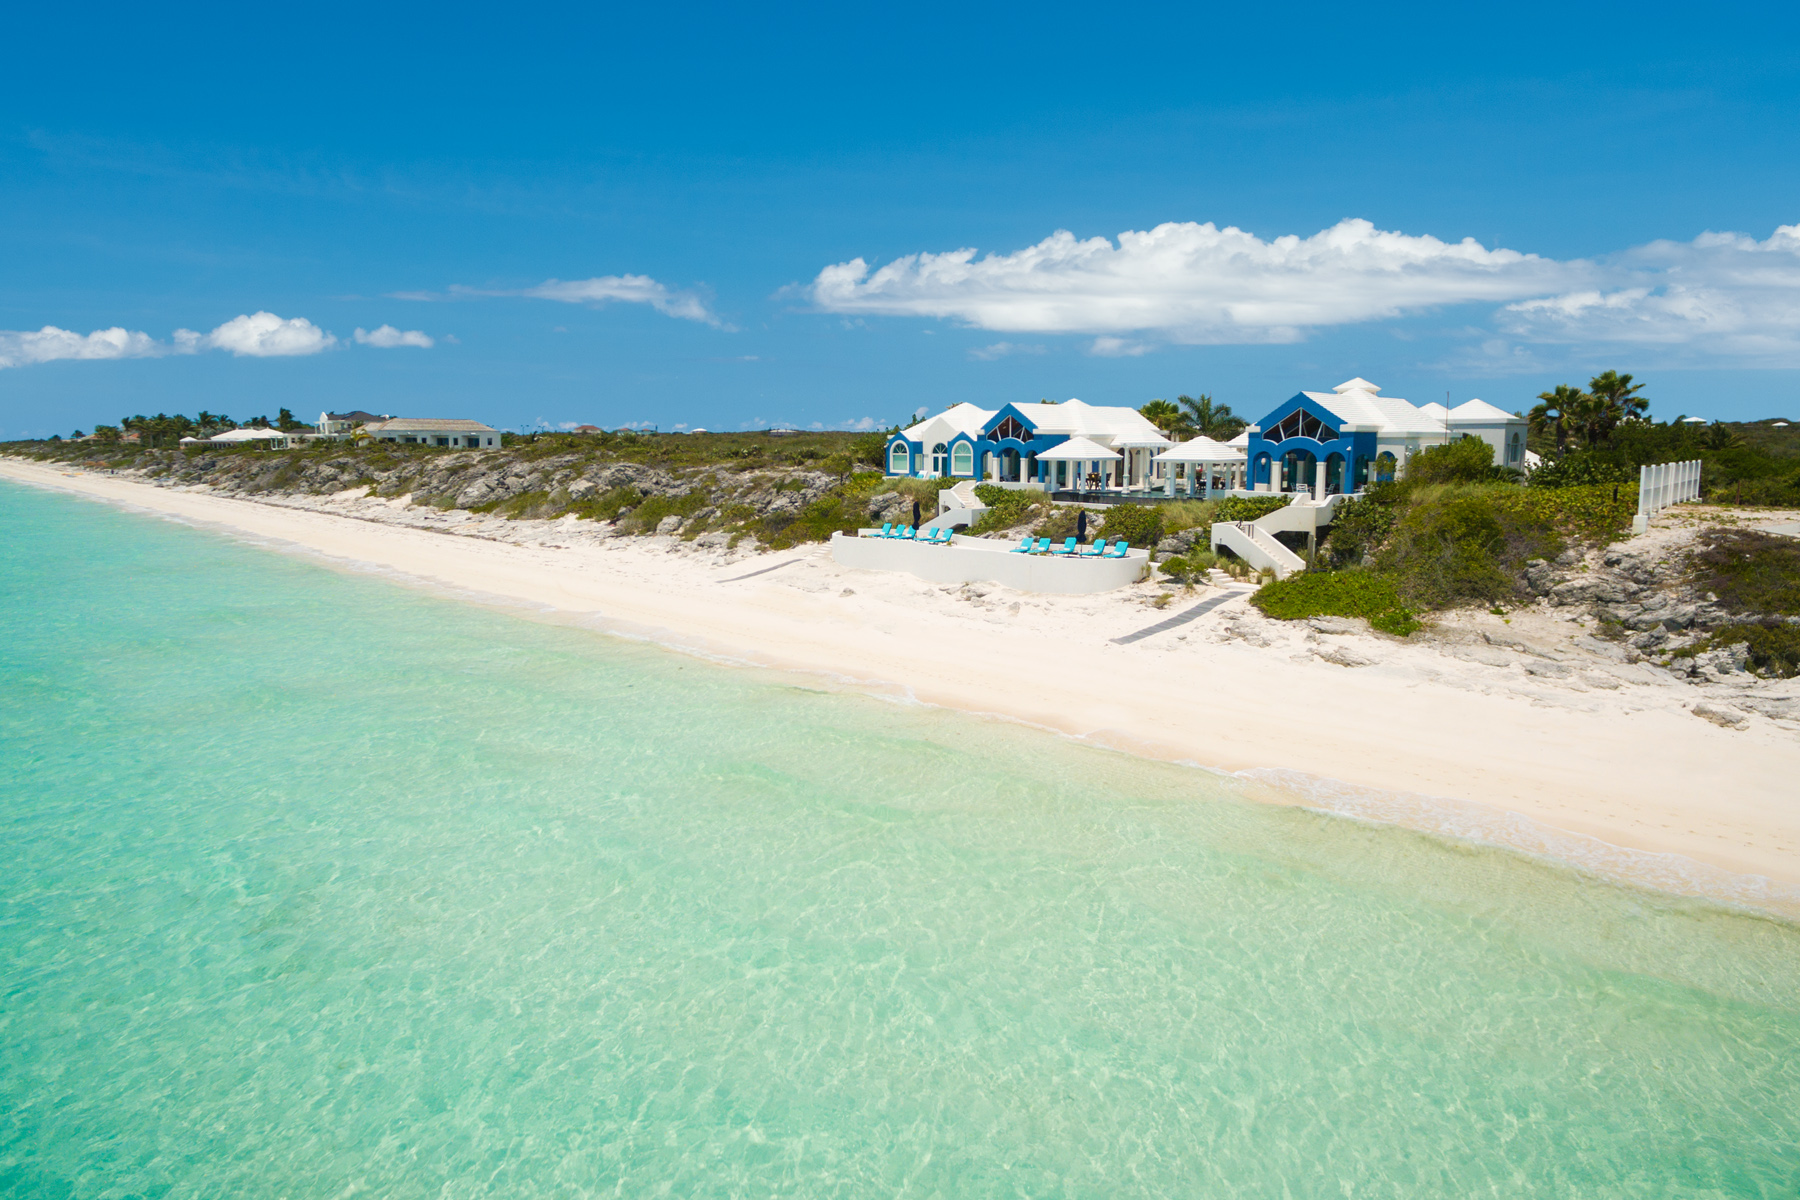 Single Family Home for Sale at Mandalay Beachfront Long Bay, TCI Turks And Caicos Islands